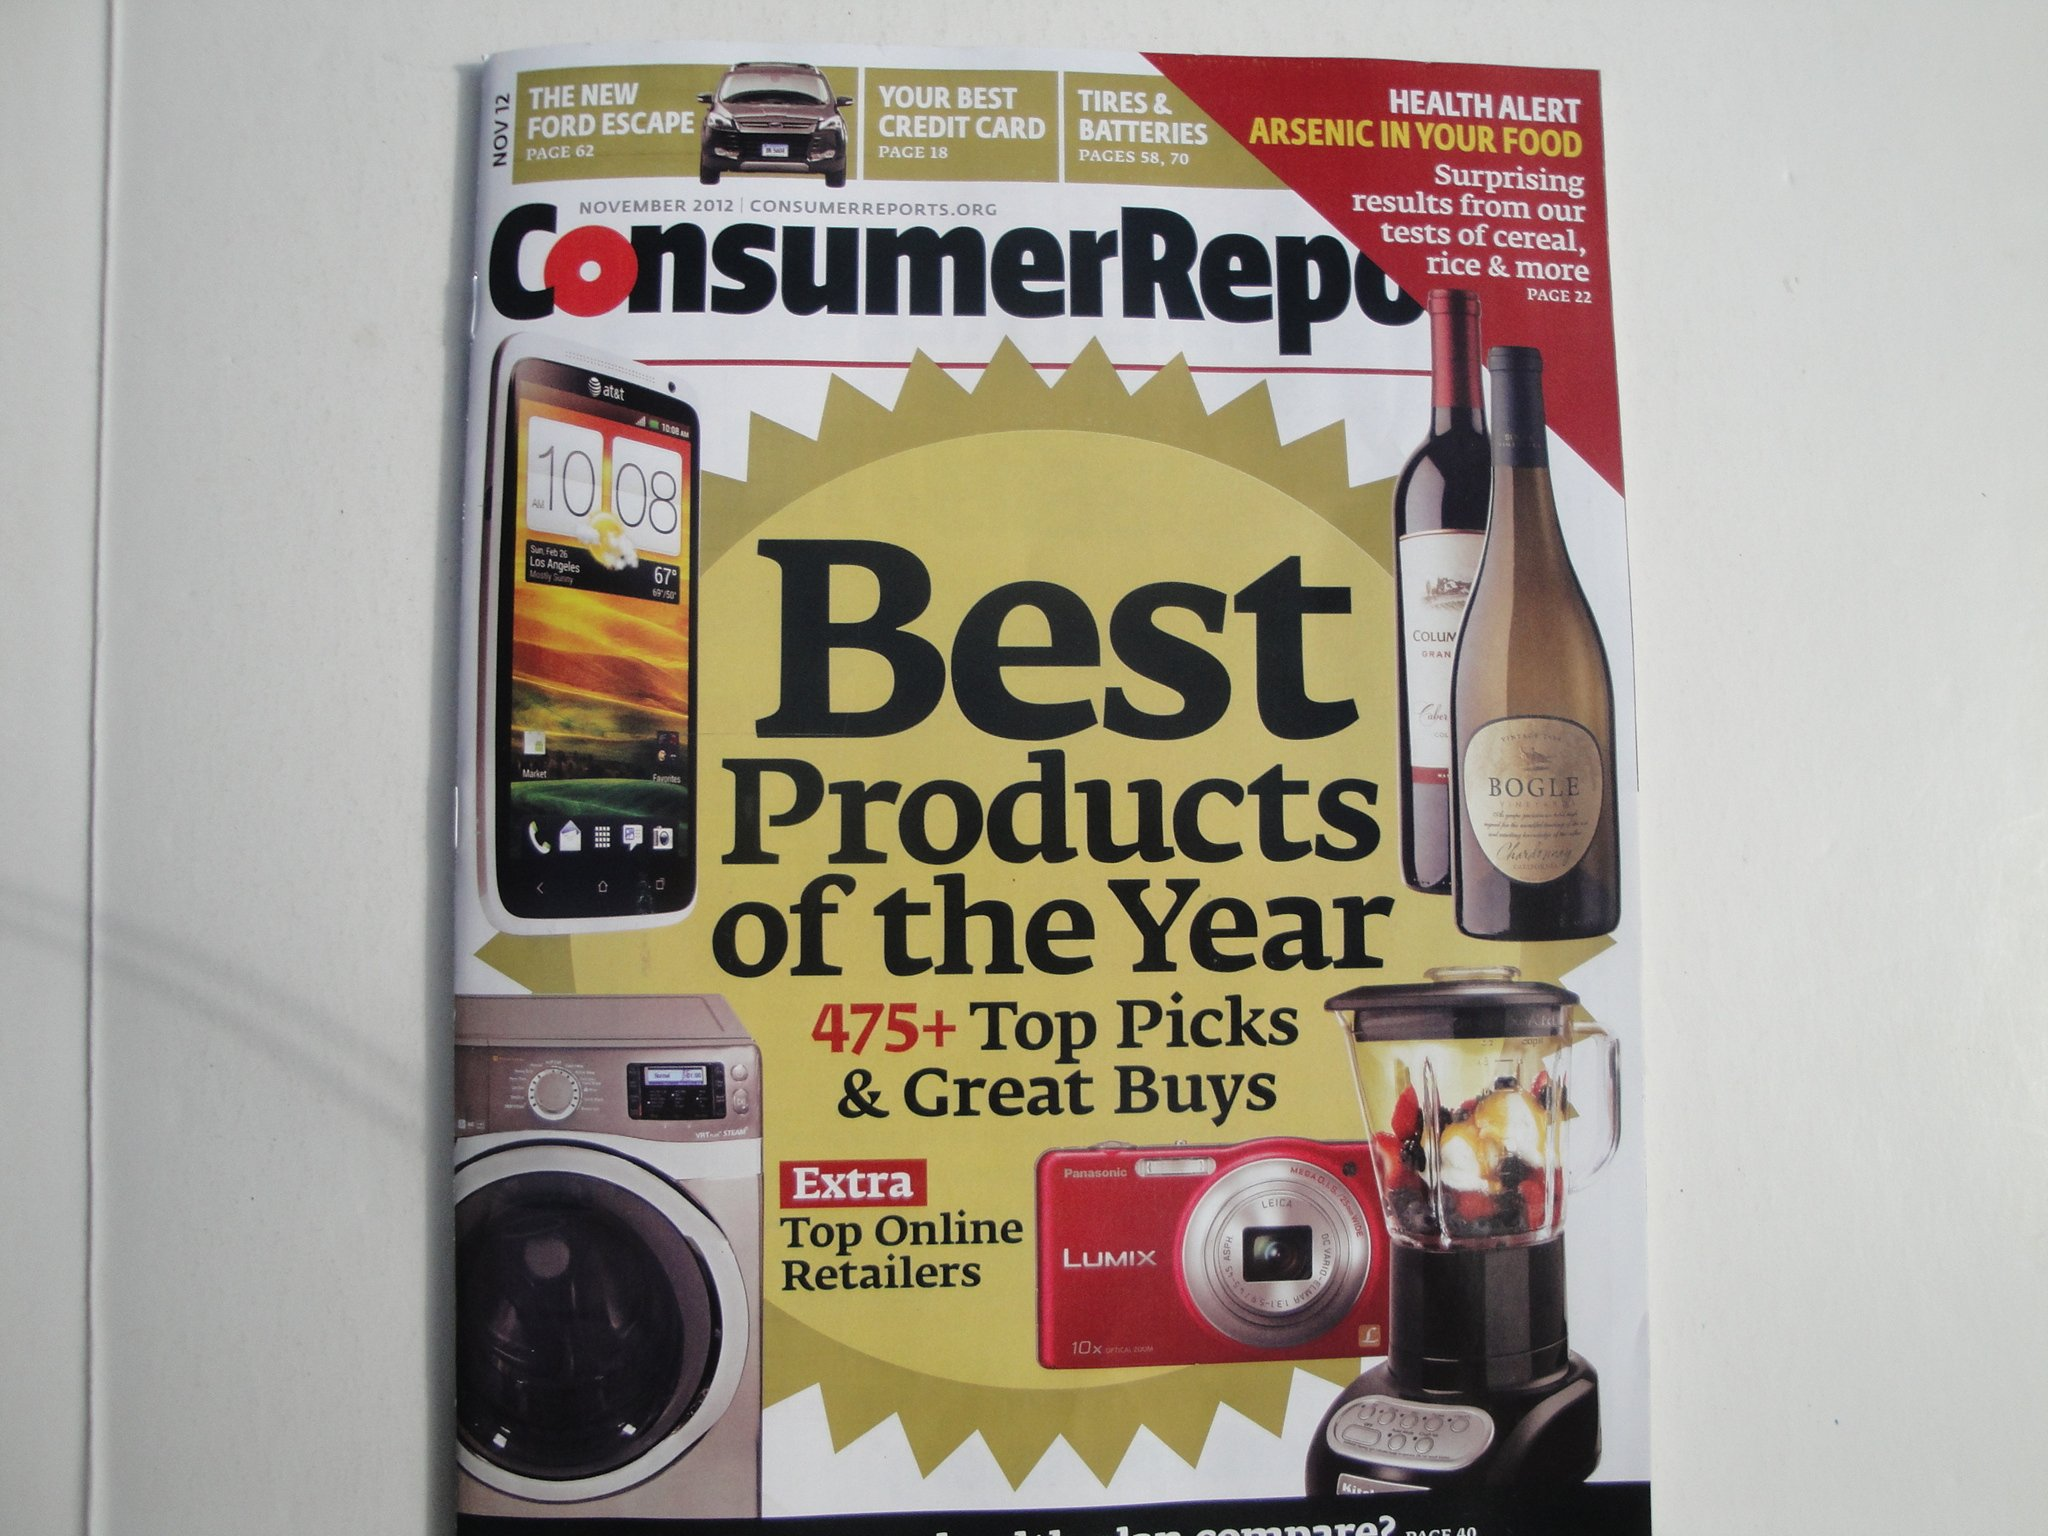 Download Consumer Reports Magazine: Best Products of the Year November 2012 (475+ Top Picks & Great Buys) ebook